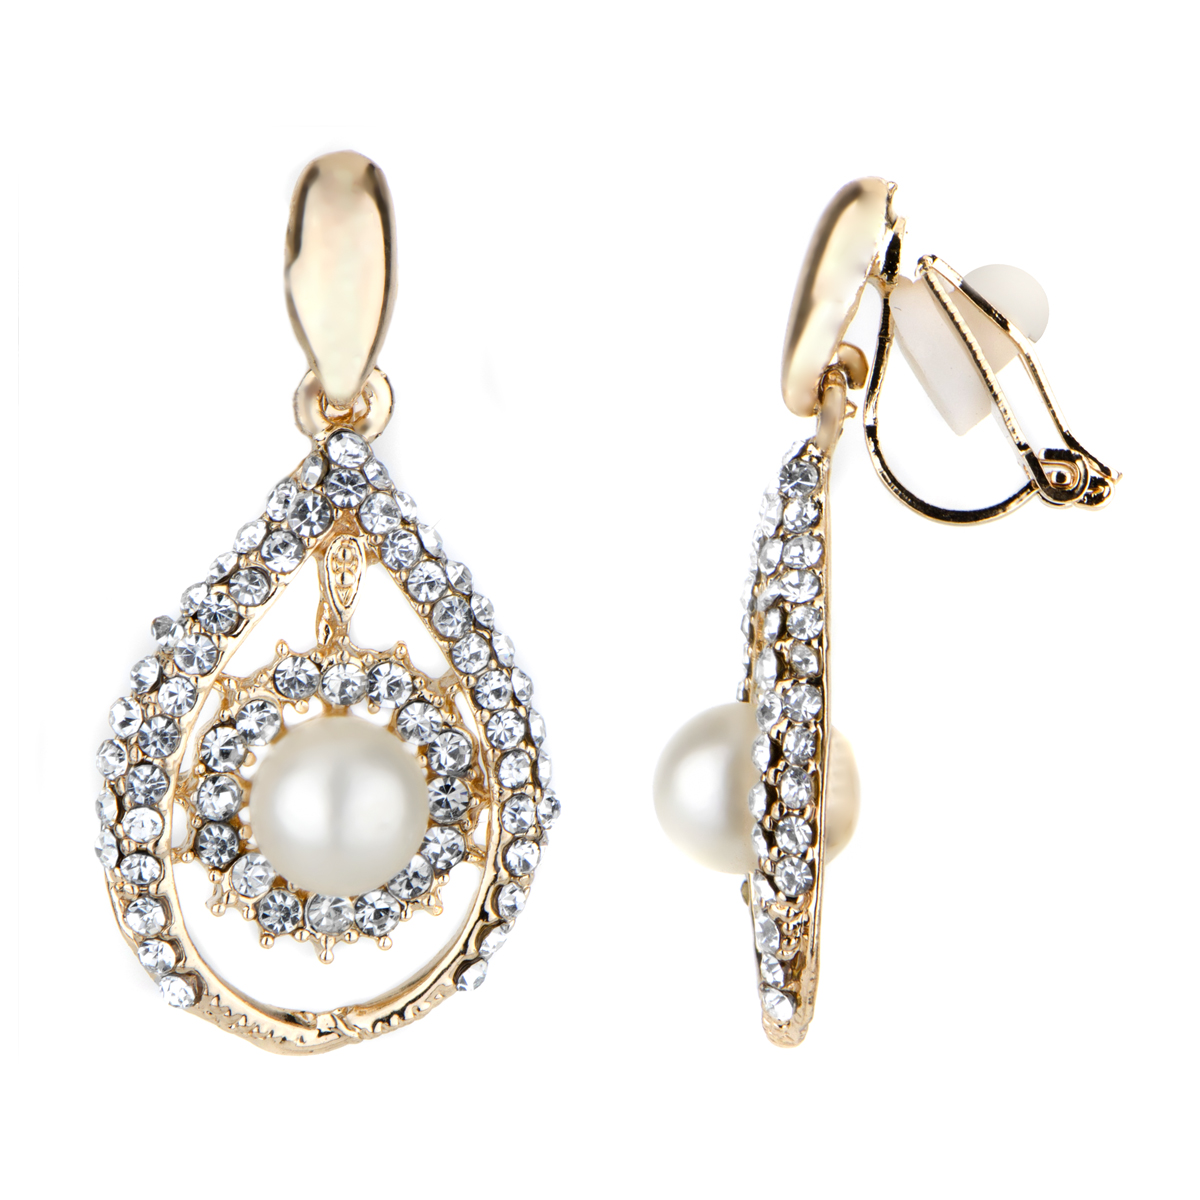 Madeline's Fancy Goldtone Imitation Pearl Tear Drop Clip On Earrings Roll  Off Image To Close Zoom Window